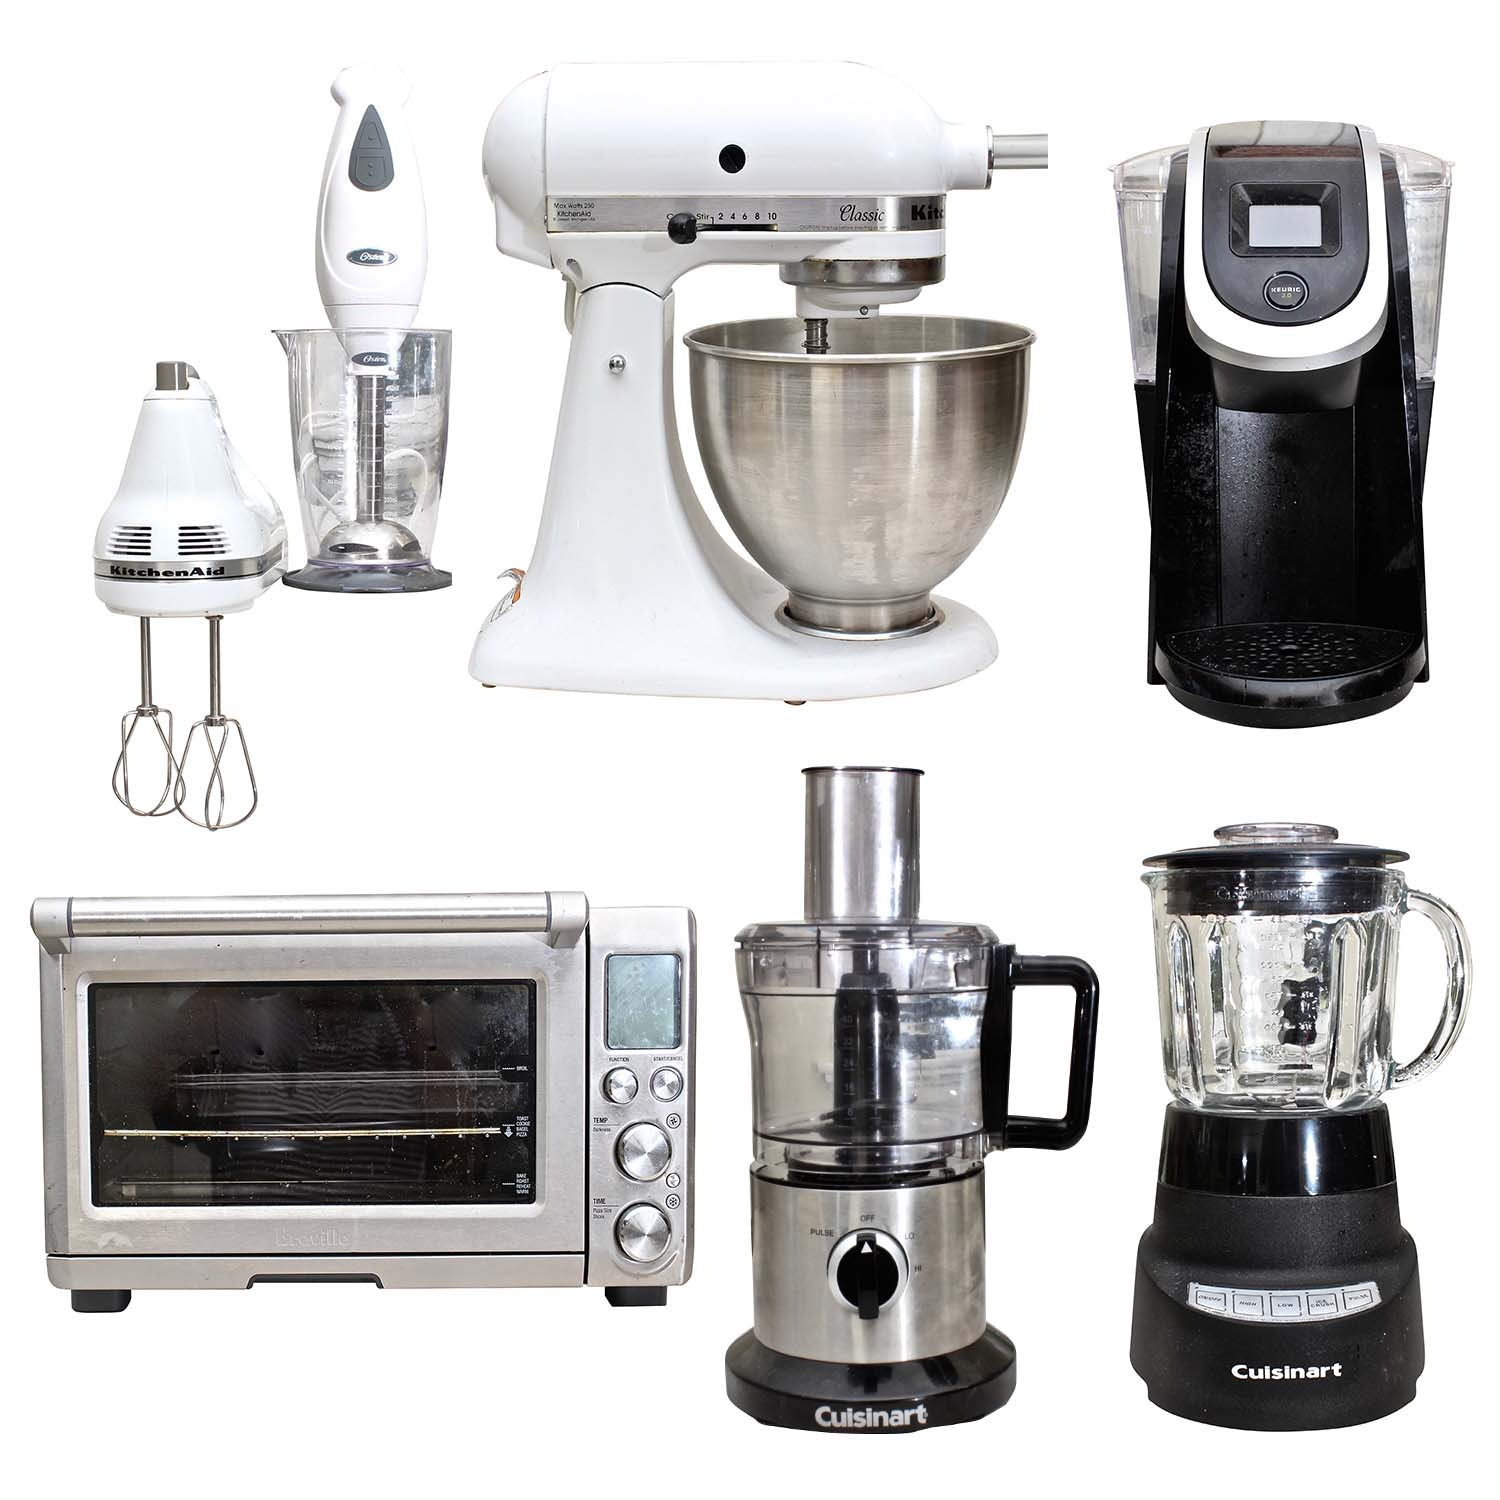 Breville, Cuisinart, KitchenAid, Keurig and Oster Small Appliances